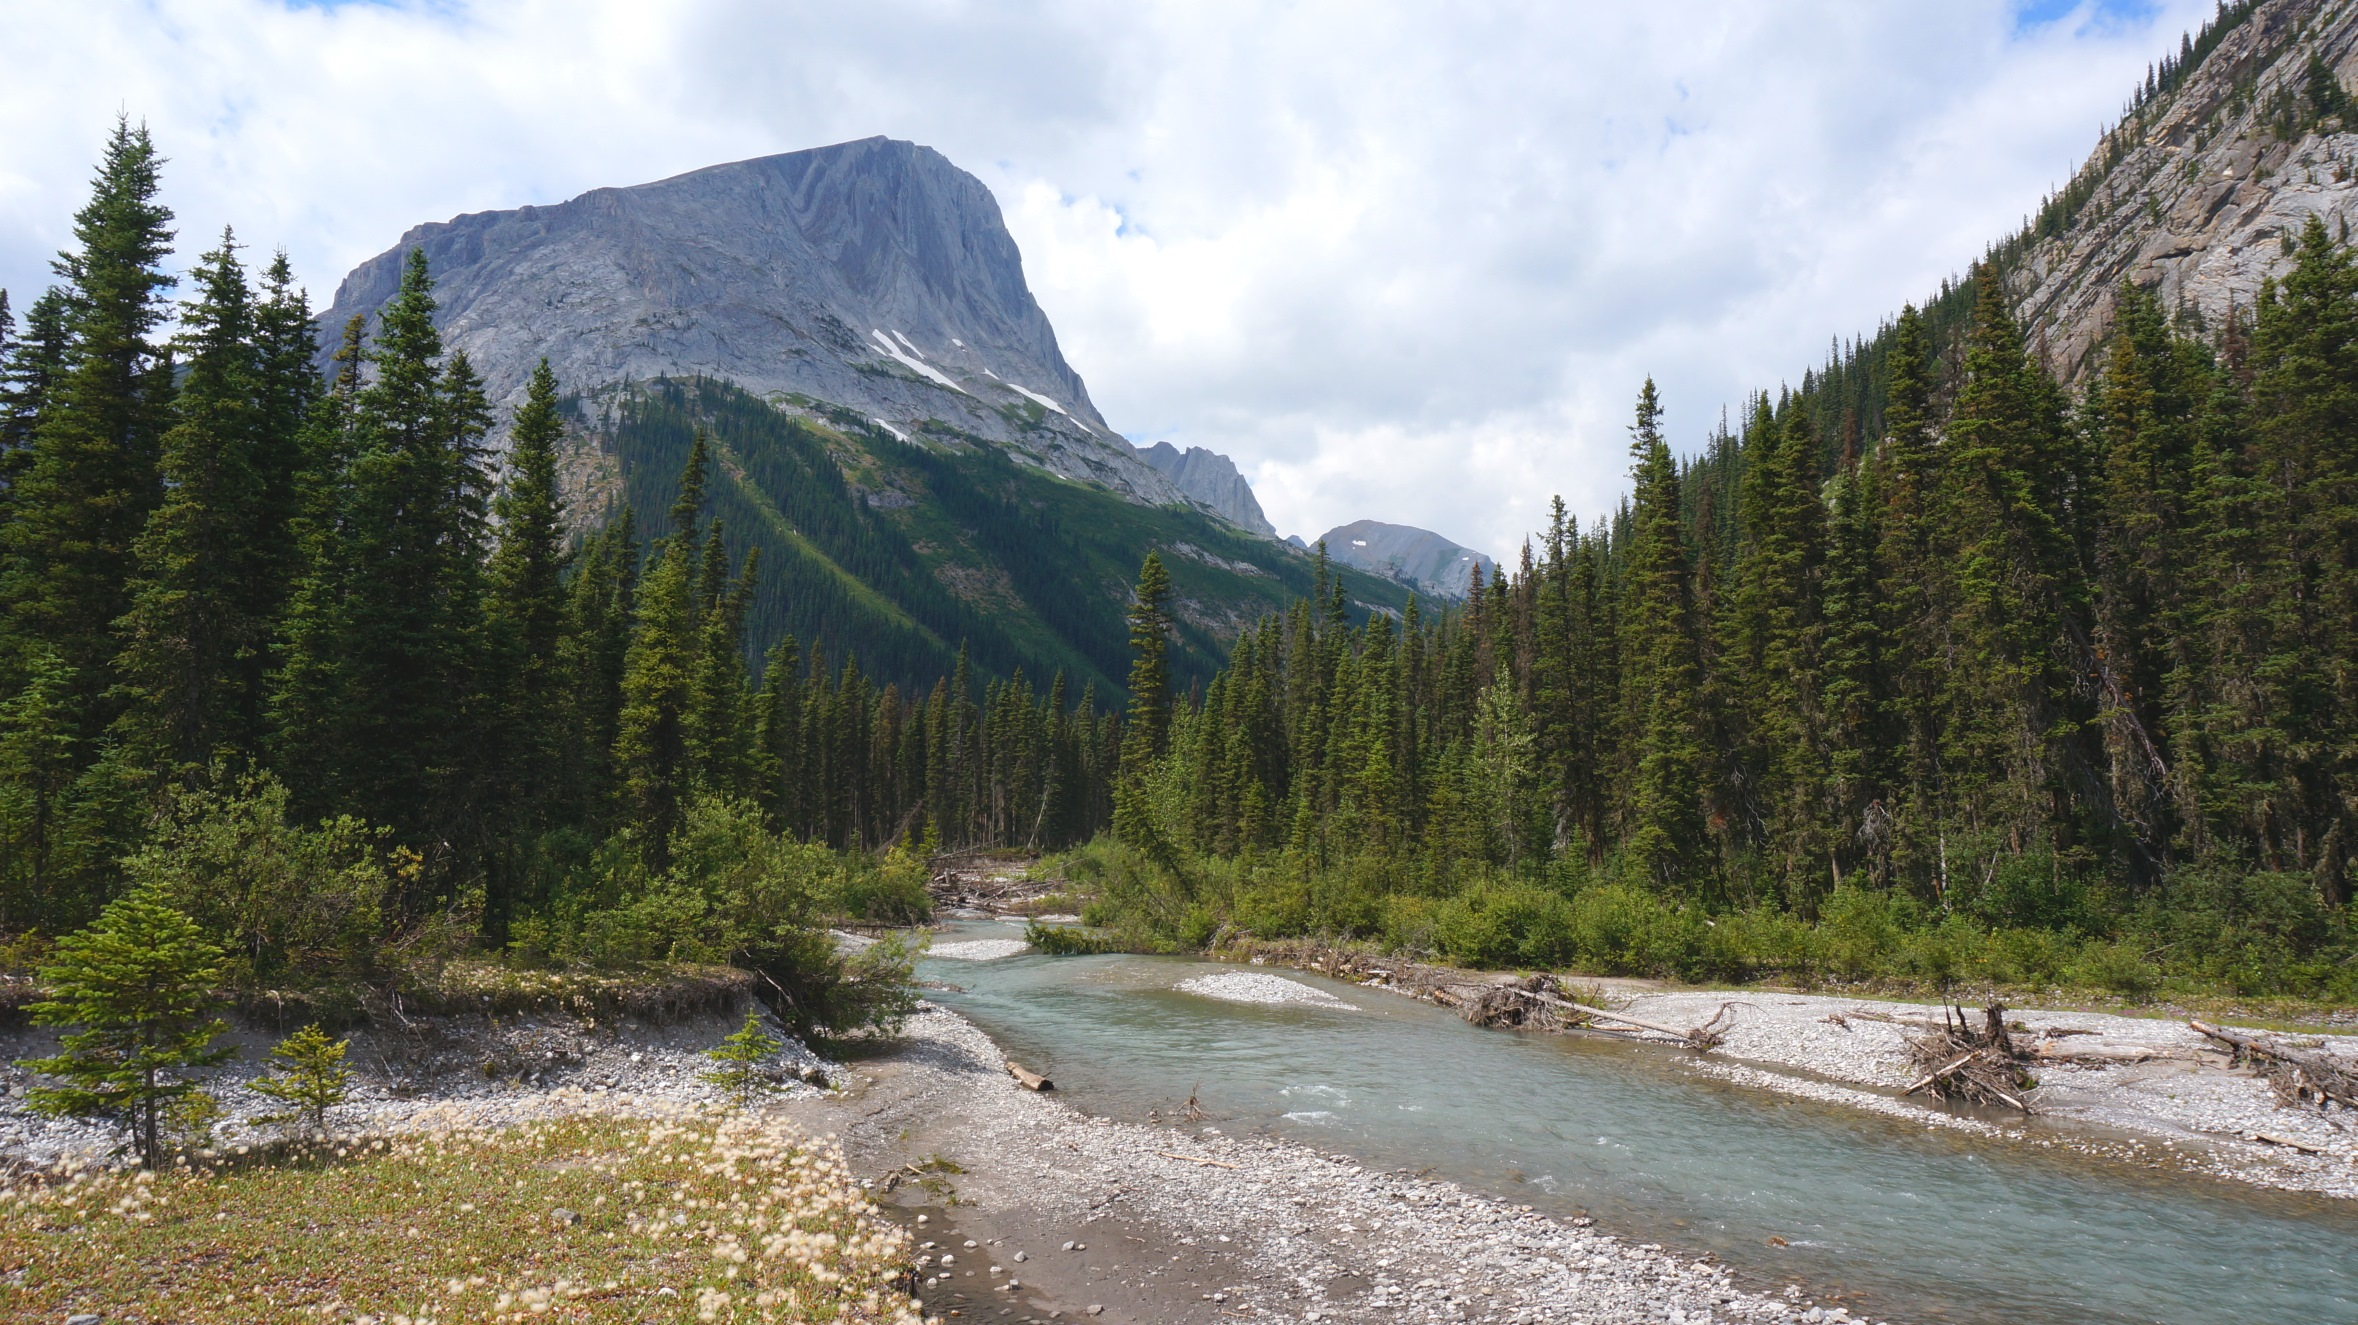 Hiking by glacier fed streams and rivers.